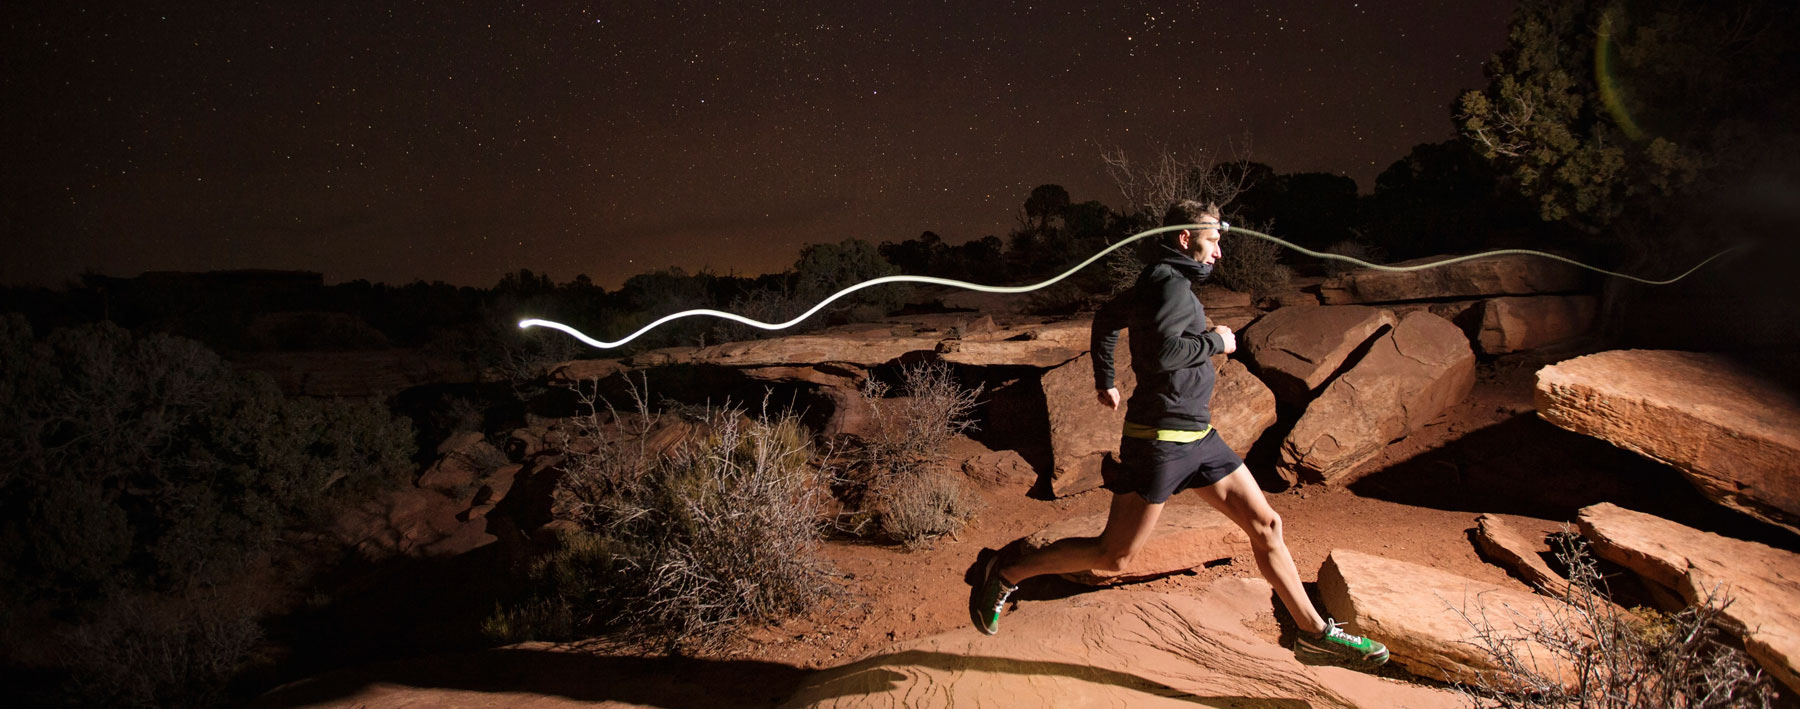 trail_running_night